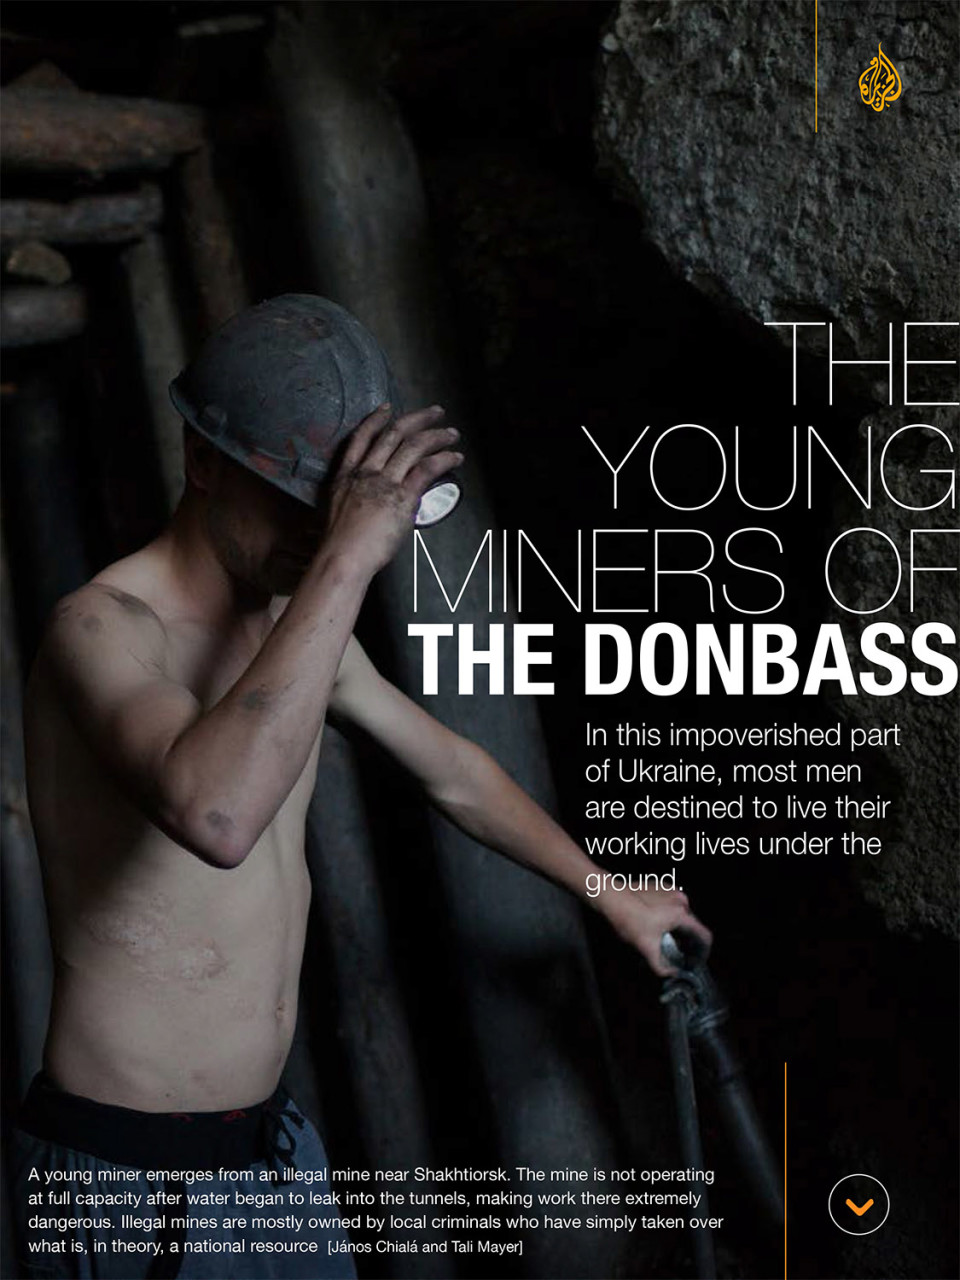 Al Jazeera English Magazine: Young miners of the Donbass. (January 2015) link to article